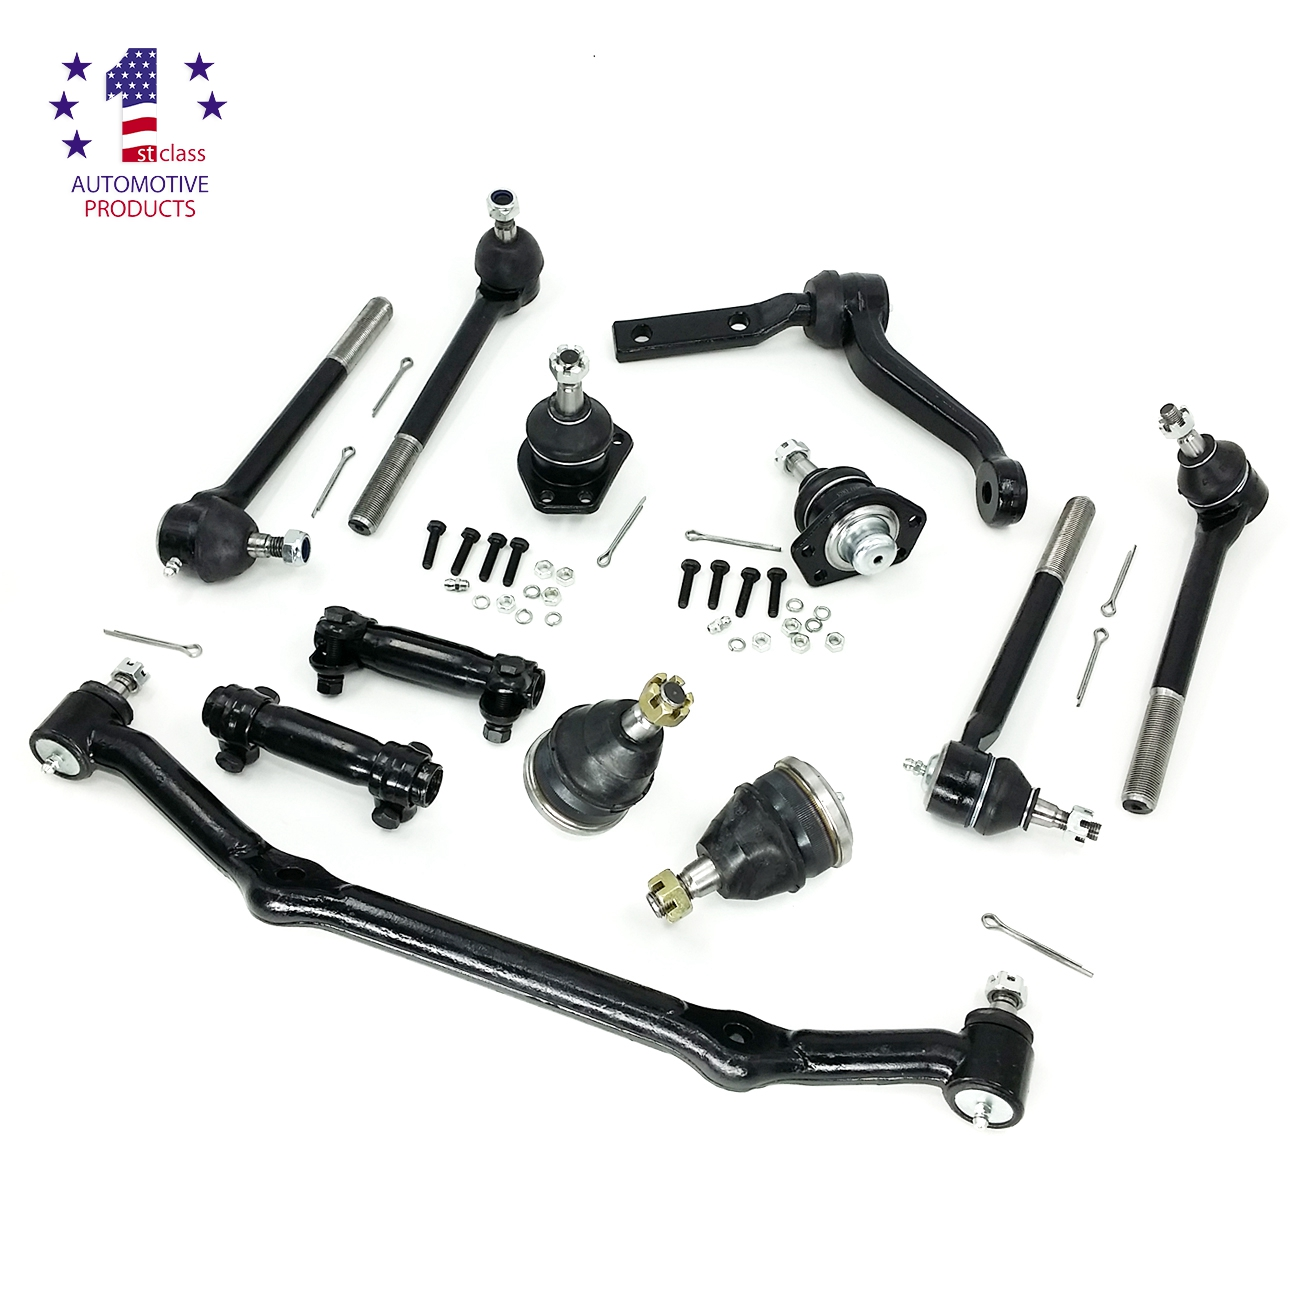 Brand New Suspension Kit For 2wd Chevy S10 Blazer Gmc